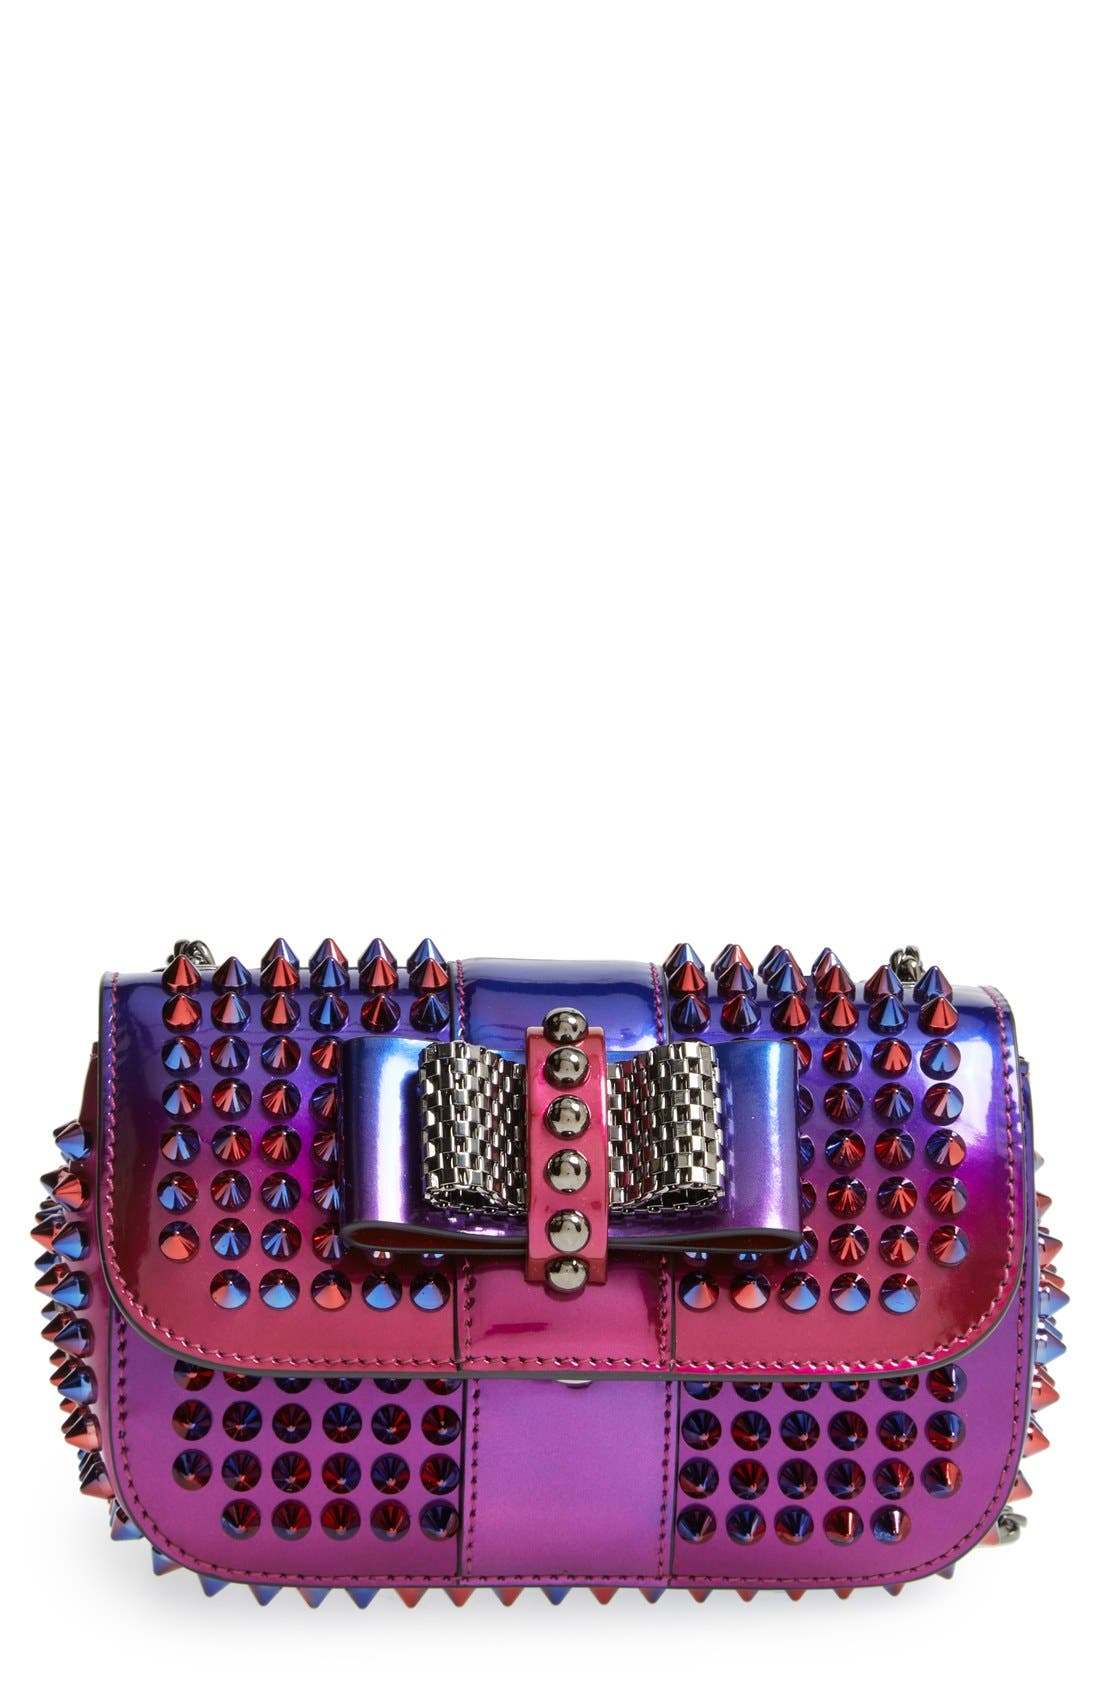 Alternate Image 1 Selected - Christian Louboutin 'Sweety Charity Scarab Spike' Patent Leather Clutch